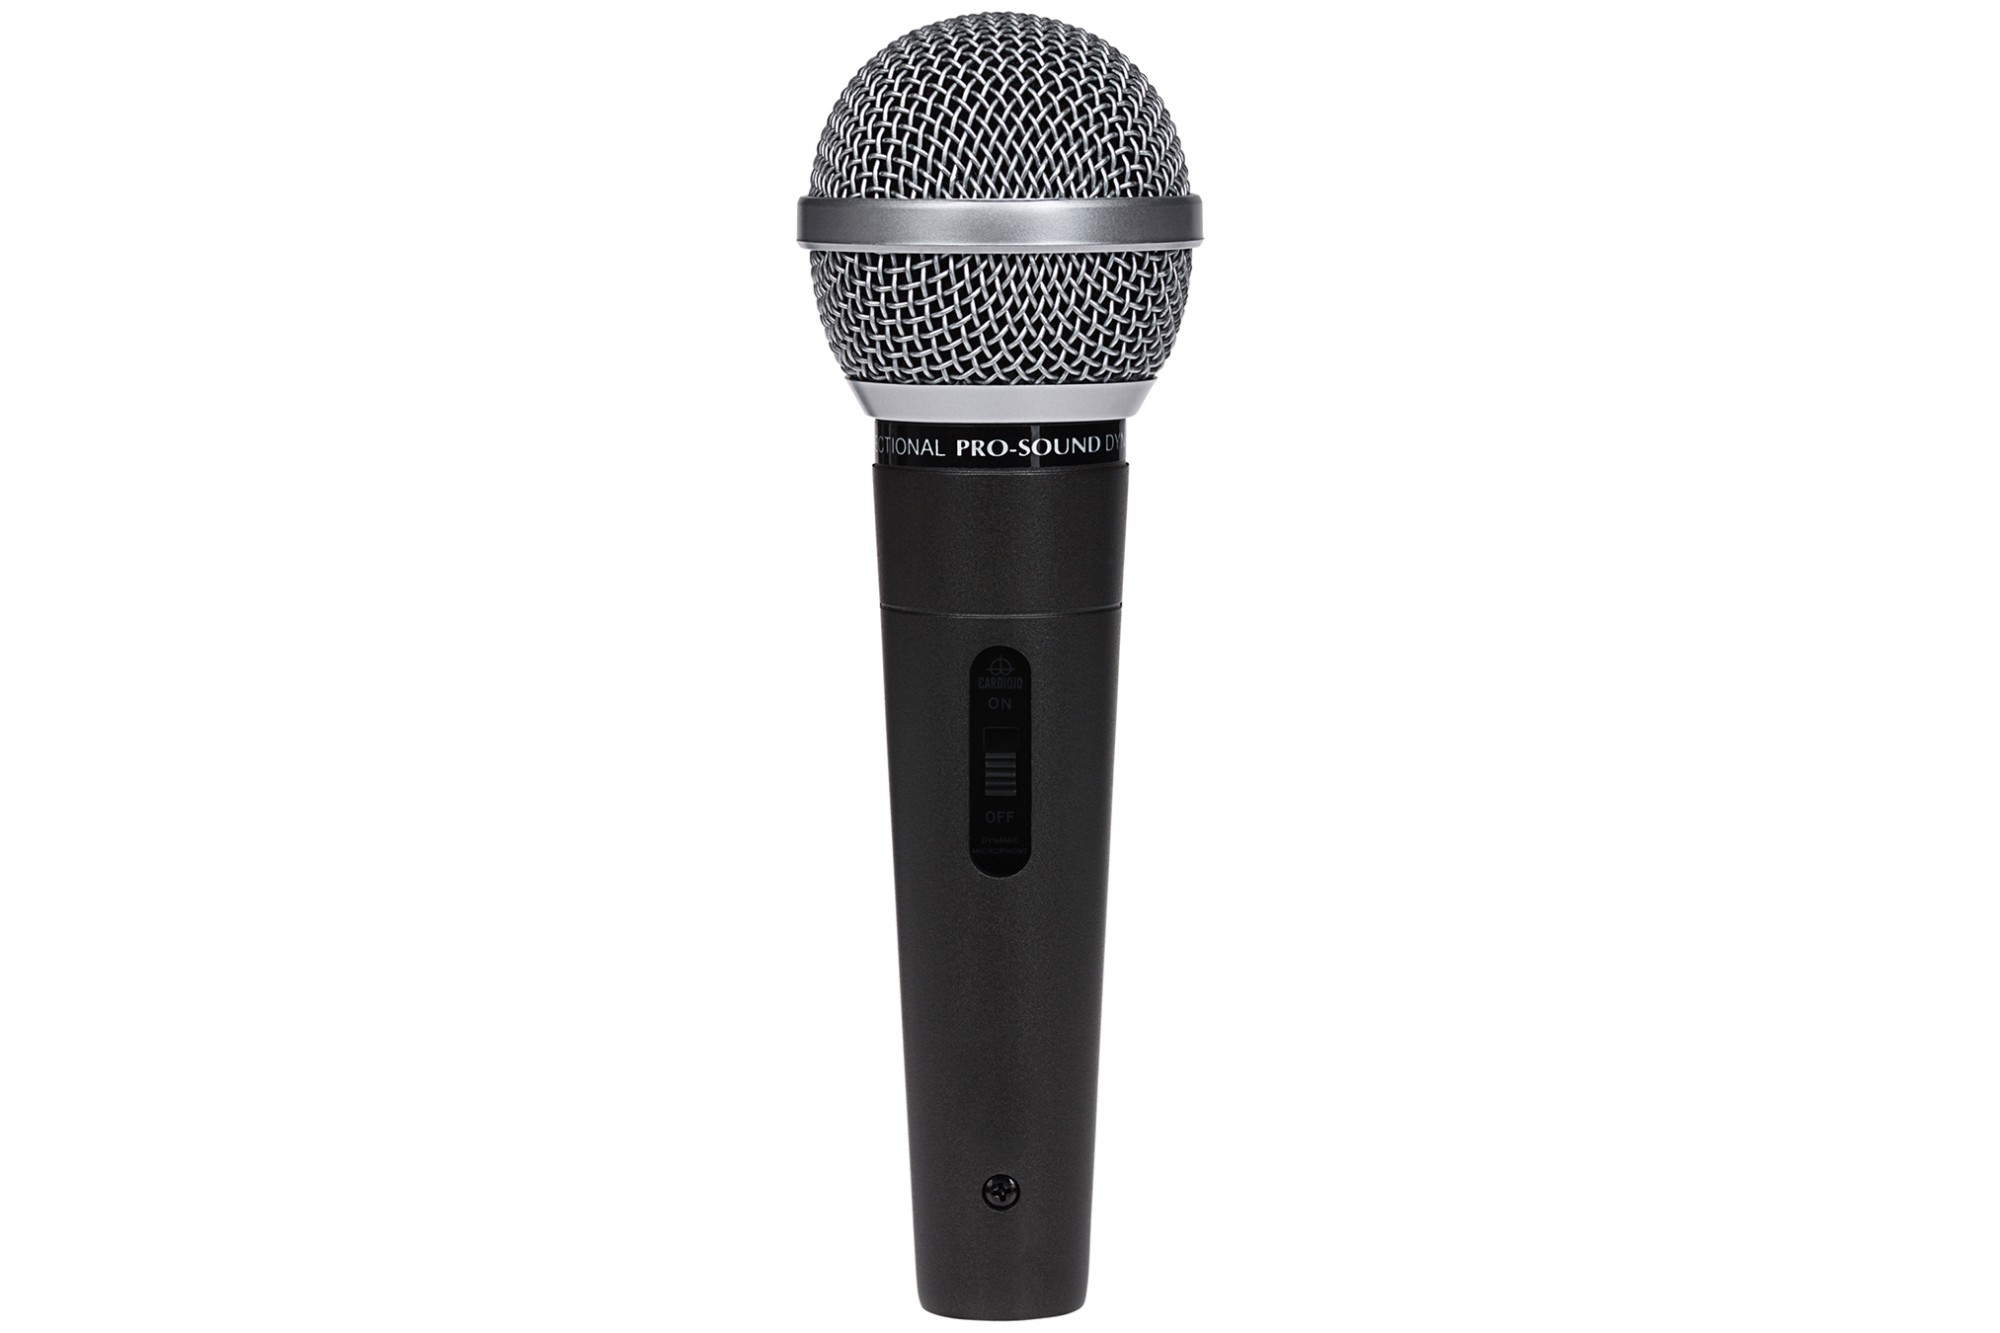 ProSound Professional Dynamic Low Impedance Vocal Microphone